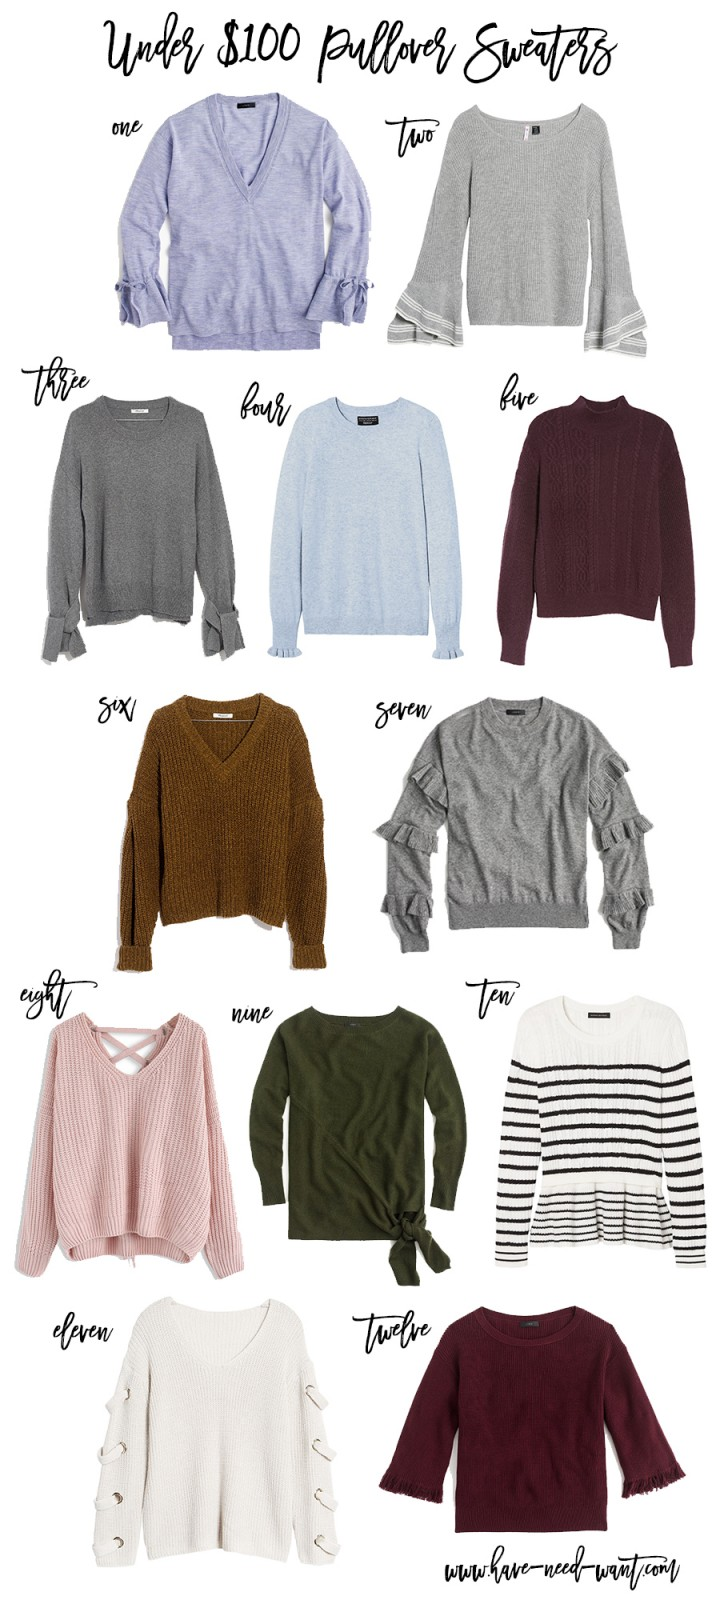 Under $100 Pullover Sweaters, Fall Style, Fall Sweaters, Pullover Sweaters, Sweaters Under $100